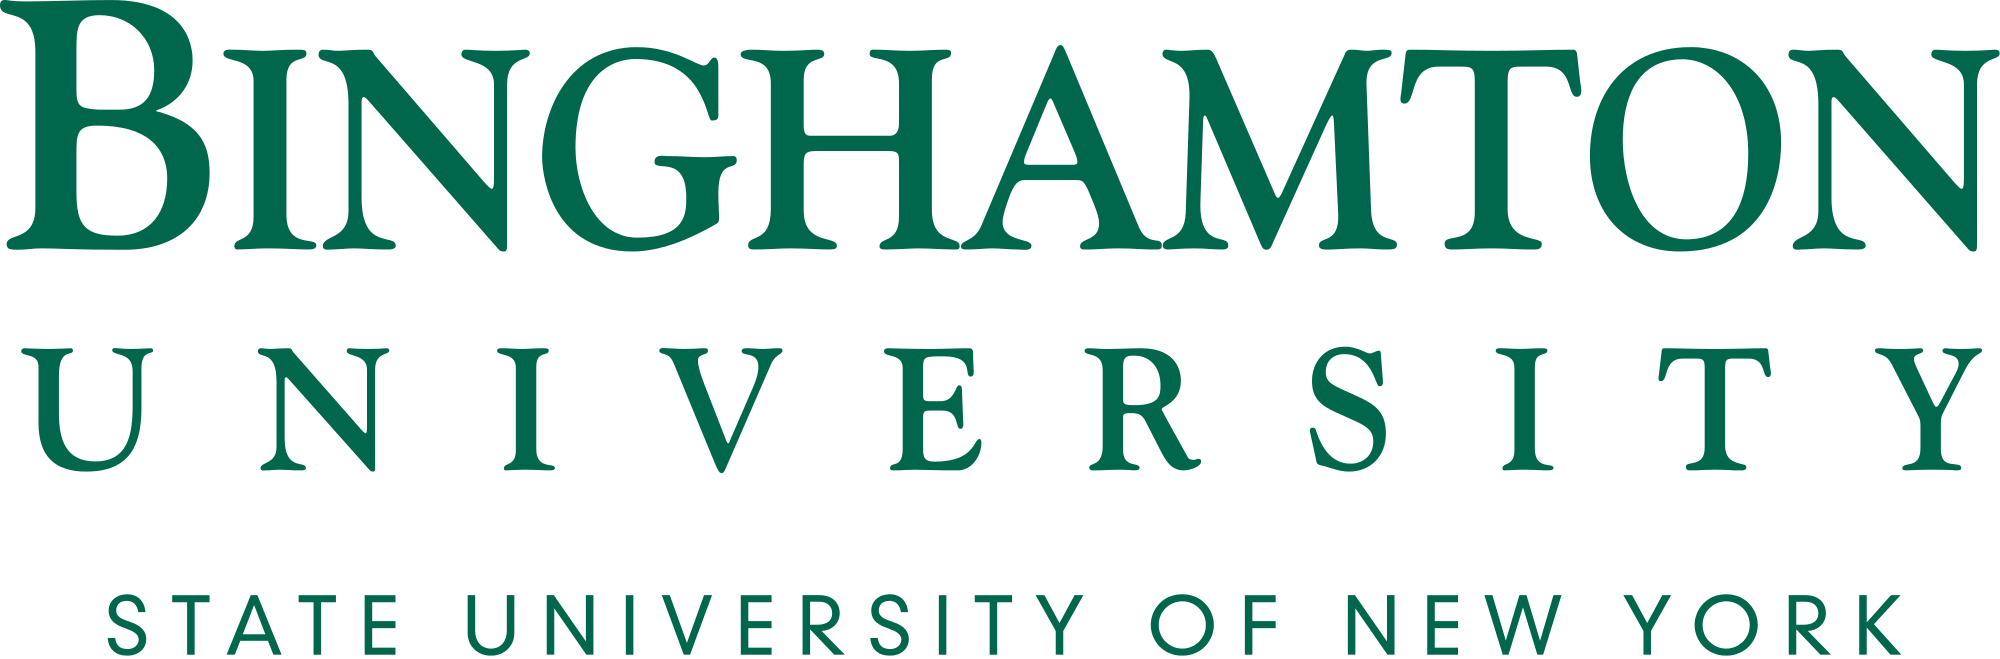 Binghamton University, State University of New York